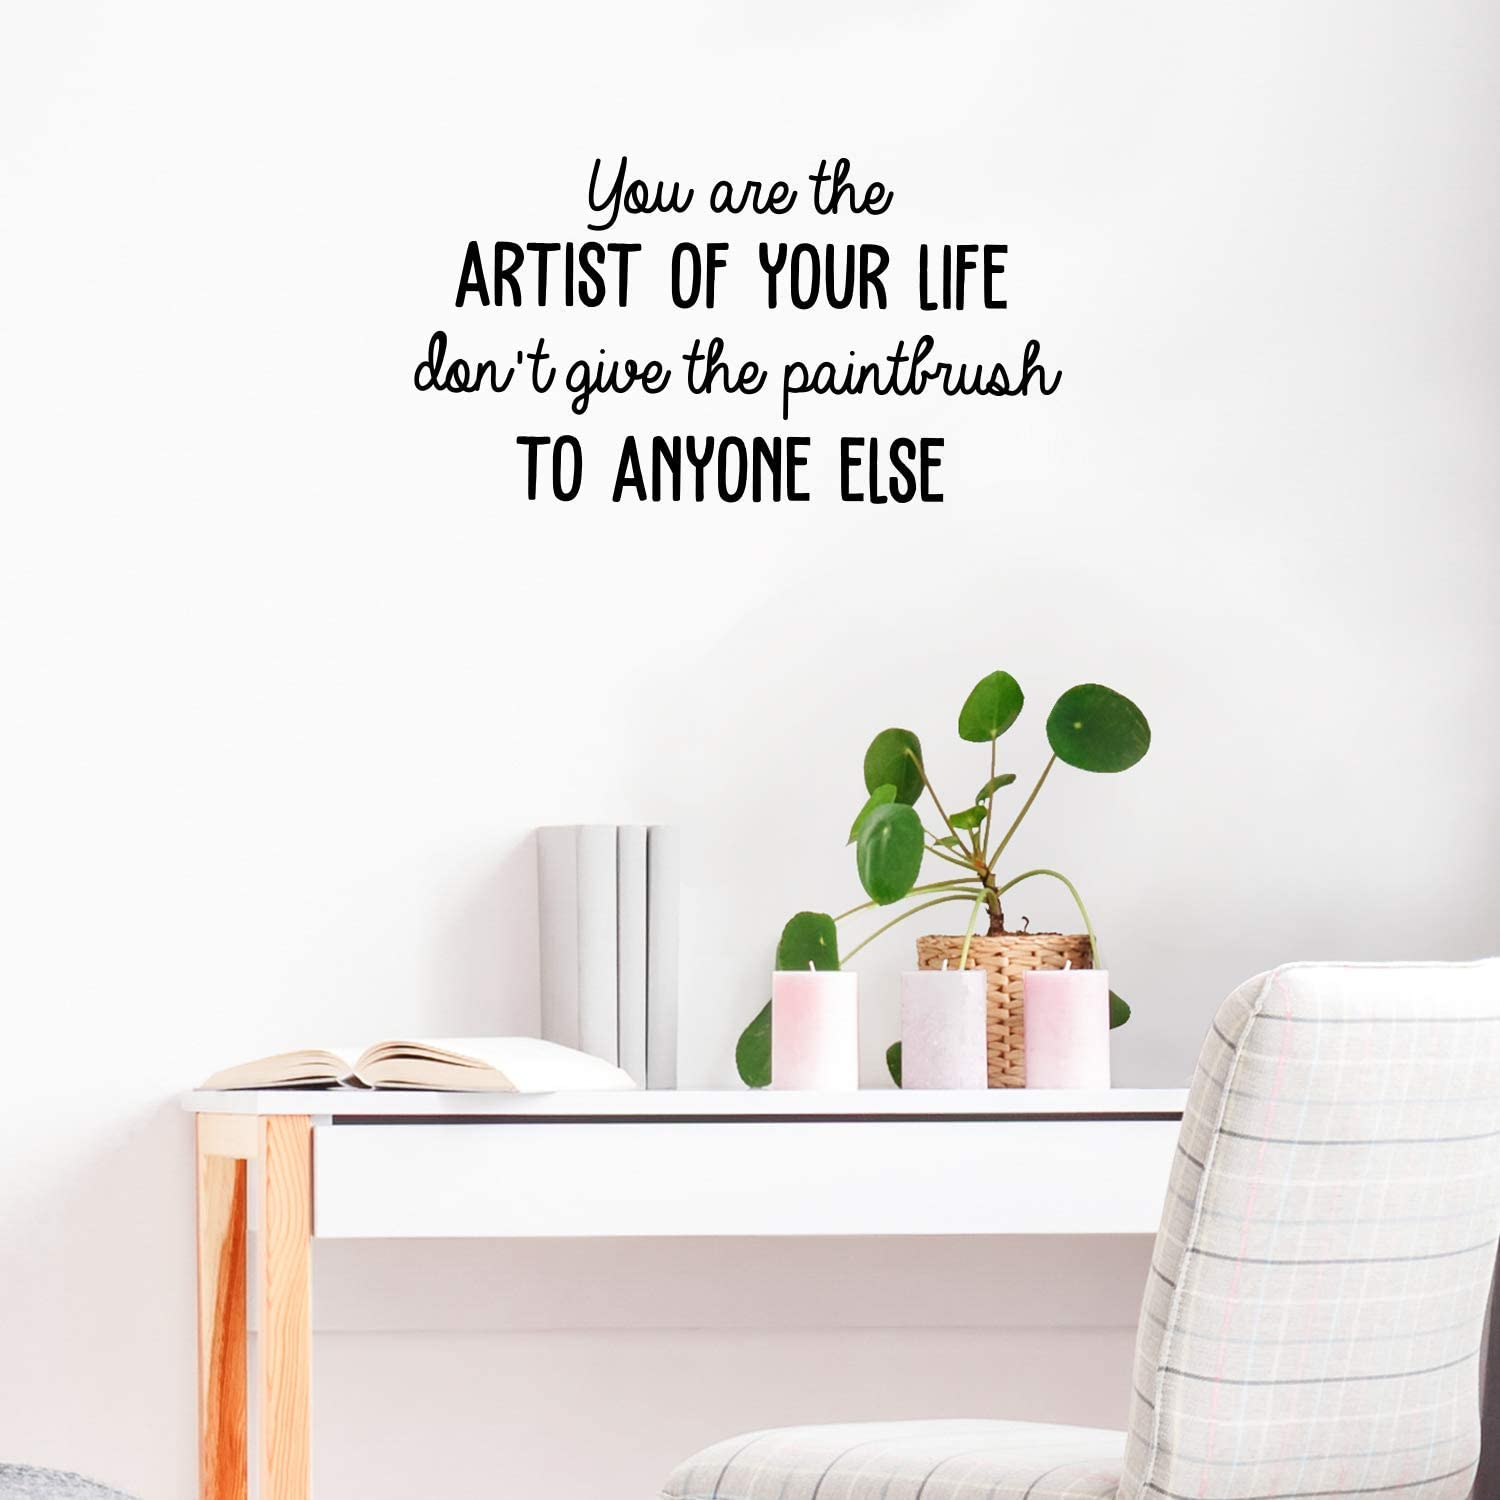 "Vinyl Wall Art Decal - You are The Artist of Your Life - 16"" x 30"" - Cute Inspirational Positive Quote Sticker for Living Room Playroom Office Meetings Conference Room School Classroom Decor (Black)"